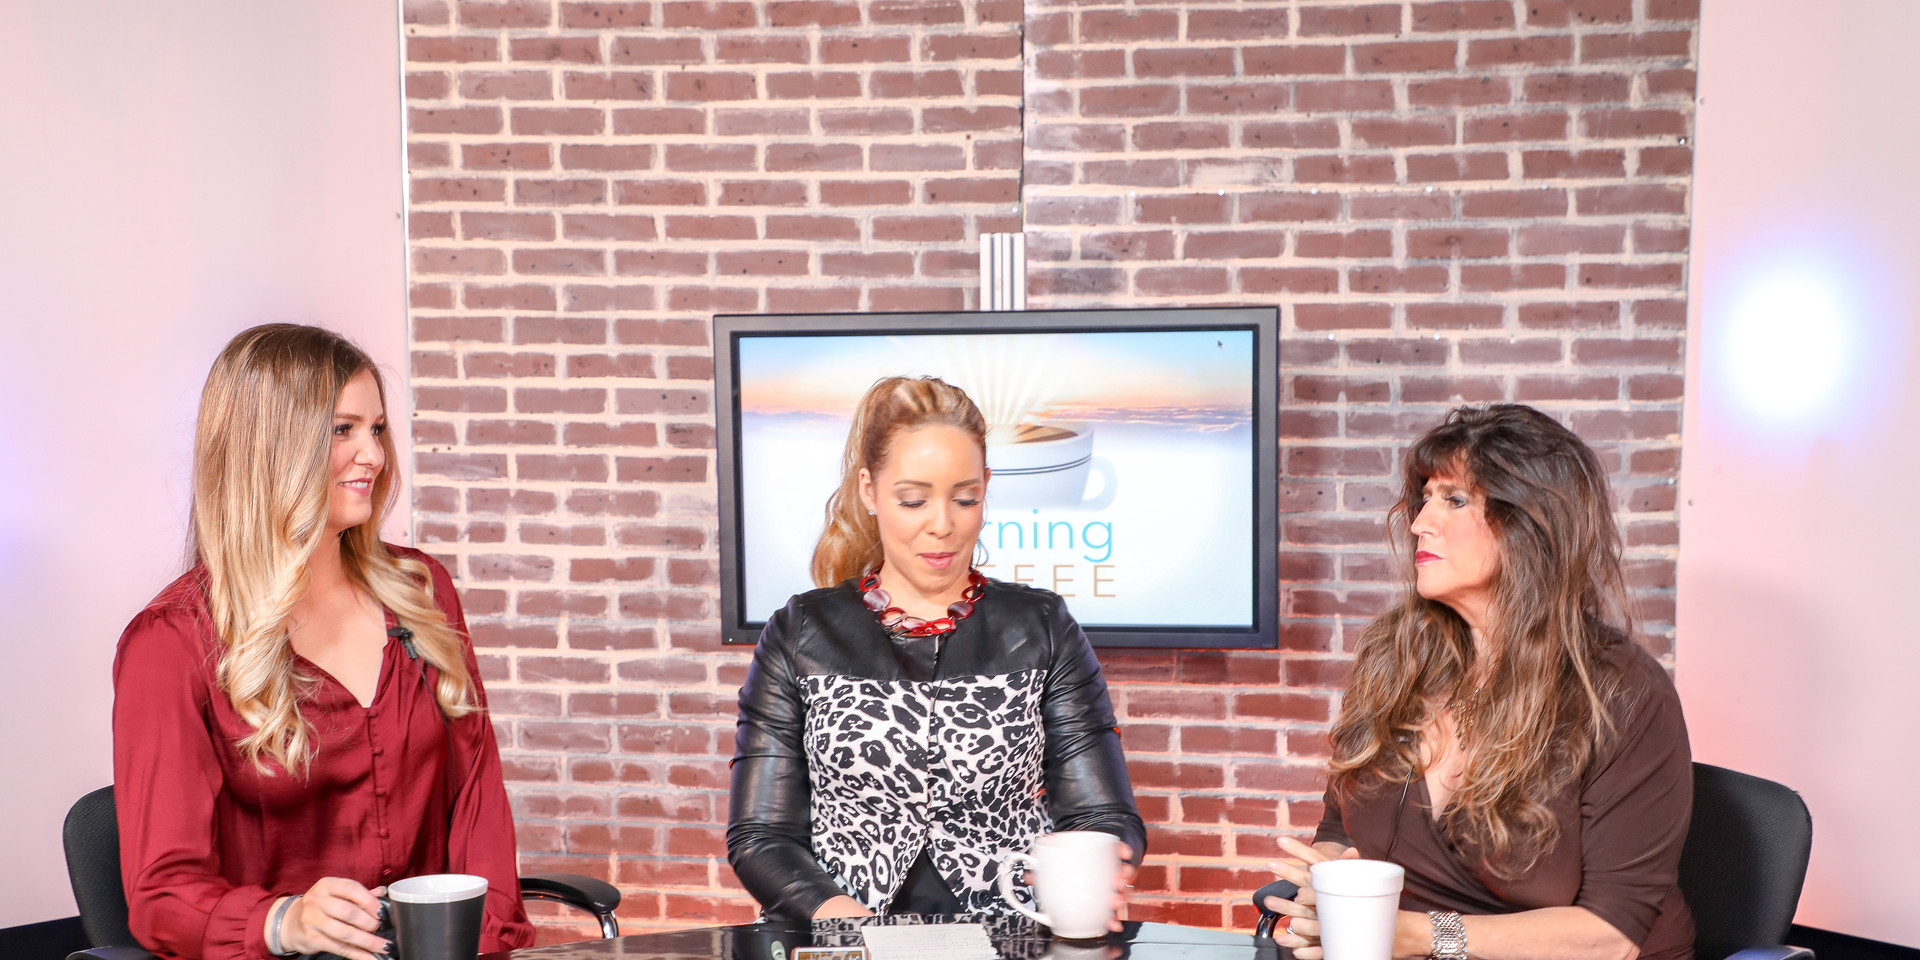 Branding Expert Guest Appearance on Morning Coffee with Millennials